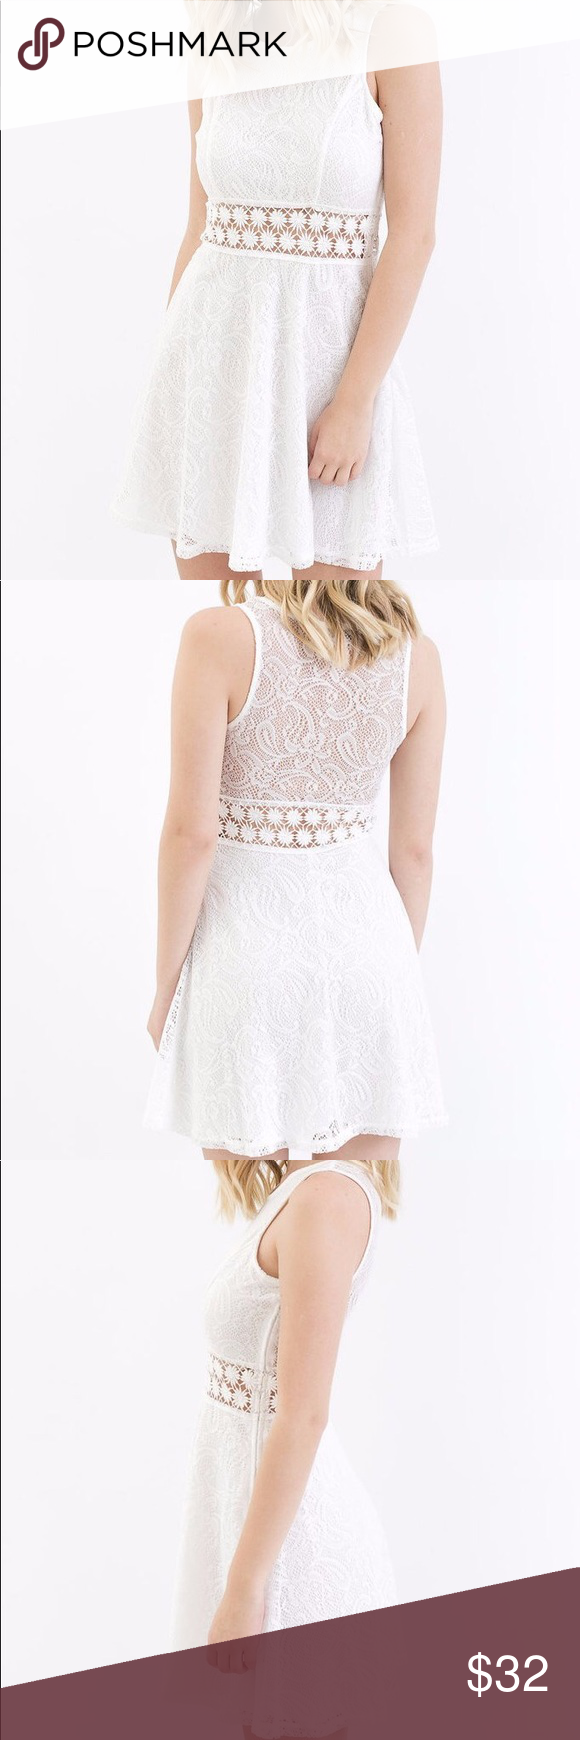 White Lace Dress Lace White Dress Crotchet Dress Dresses